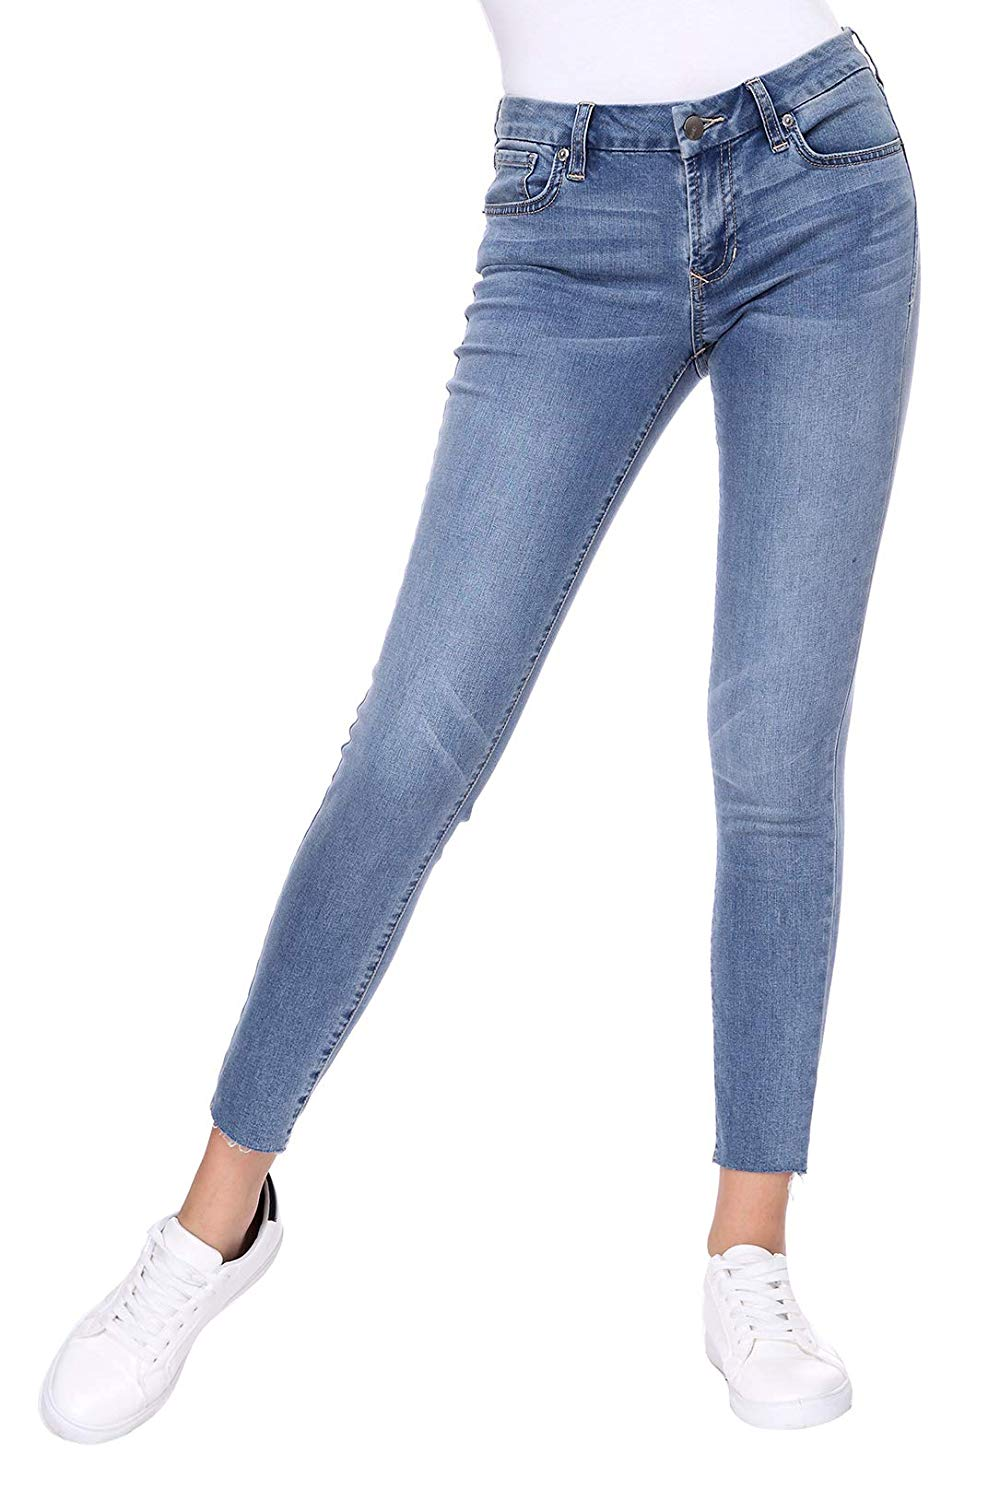 Soul Gene Womens Mid-Rise Stretch Comfy Classic Ankle Denim Skinny Jeans